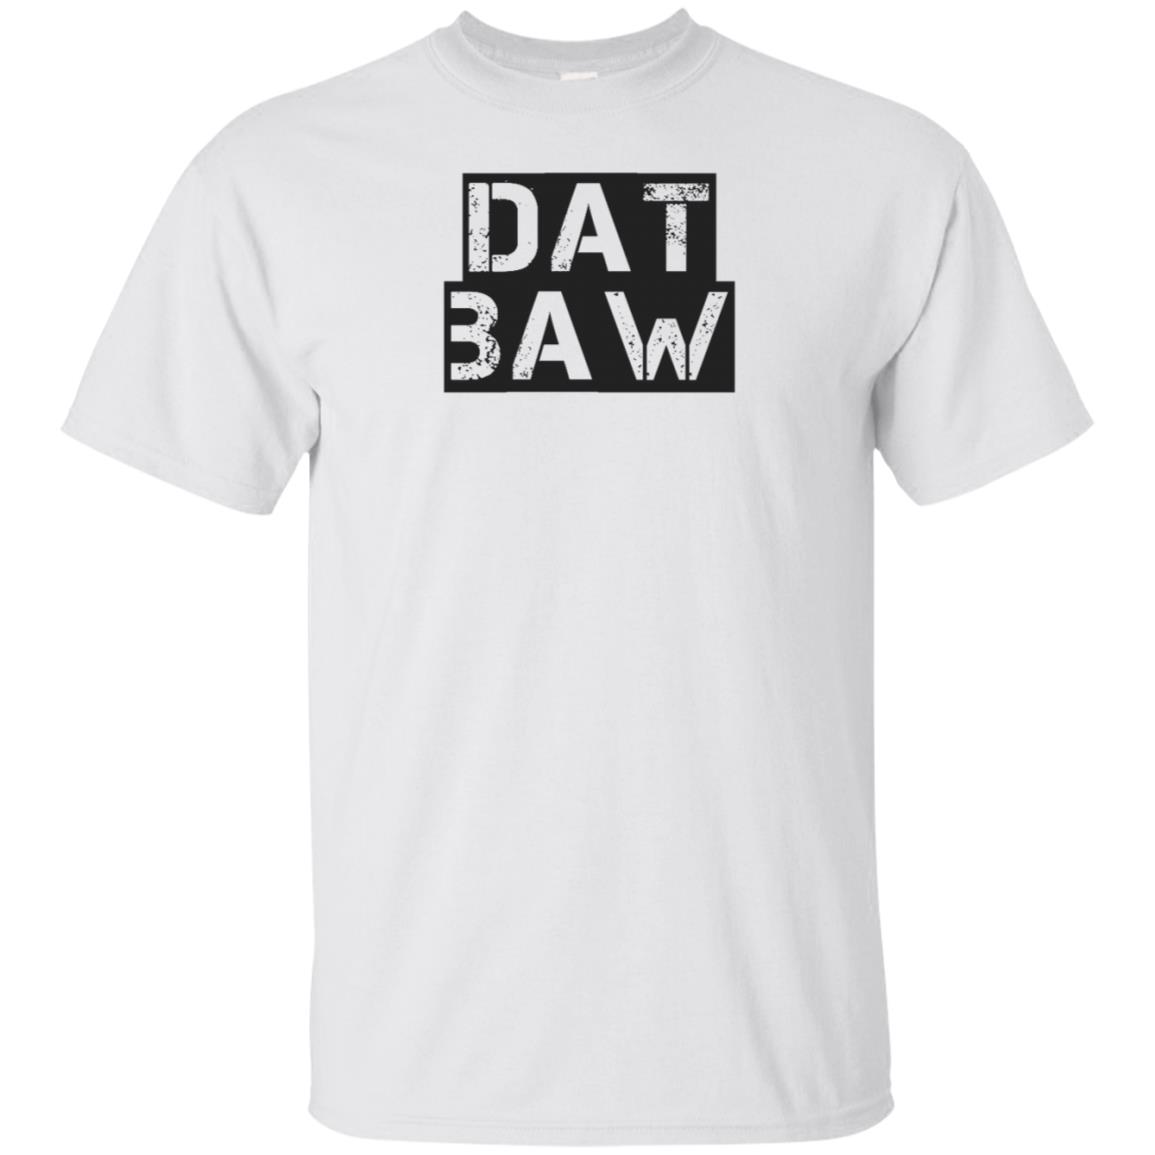 Dat Baw Funny Louisiana Cajun Words Slang Humor Tee-3 Unisex Short Sleeve